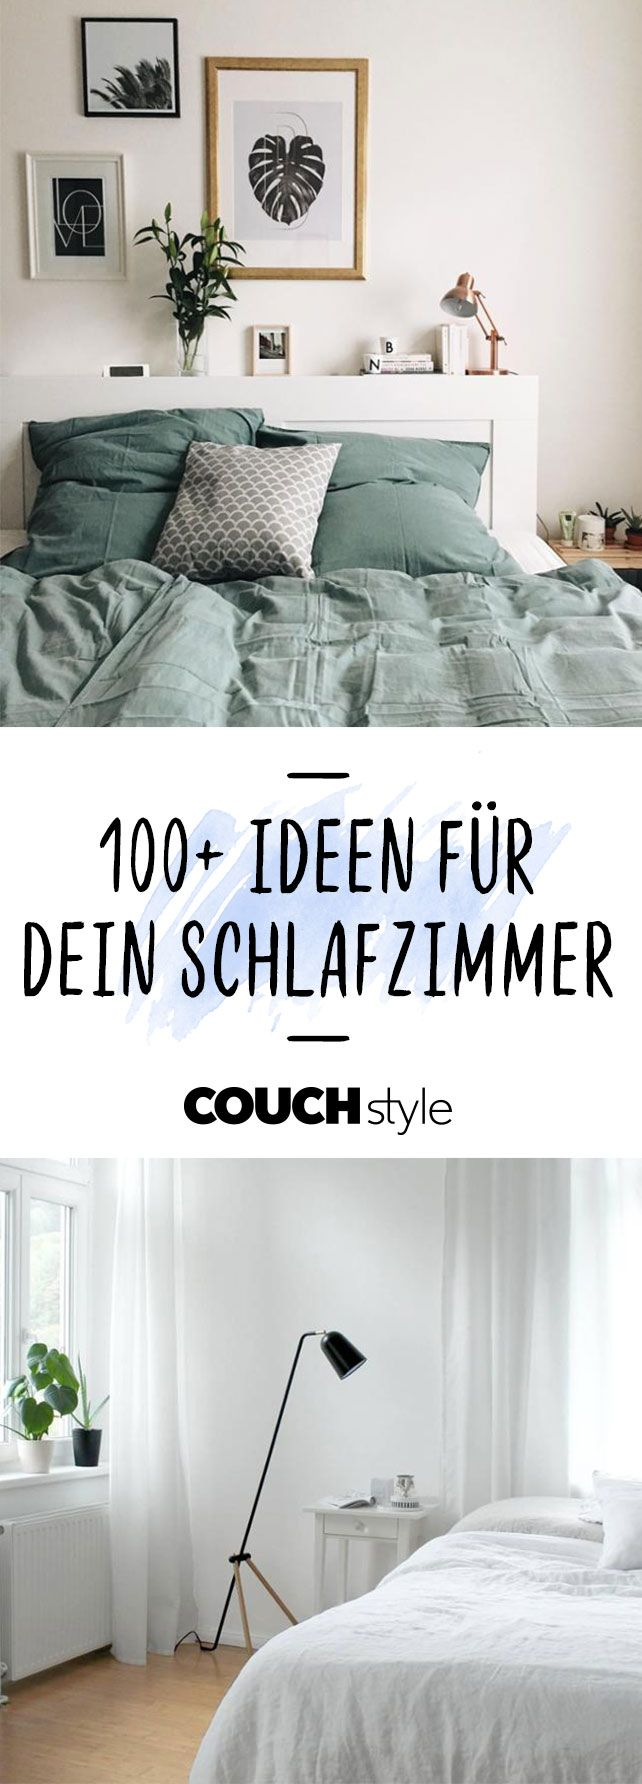 schlafzimmer bilder ideen bettwaesche bett und einrichtungsideen. Black Bedroom Furniture Sets. Home Design Ideas